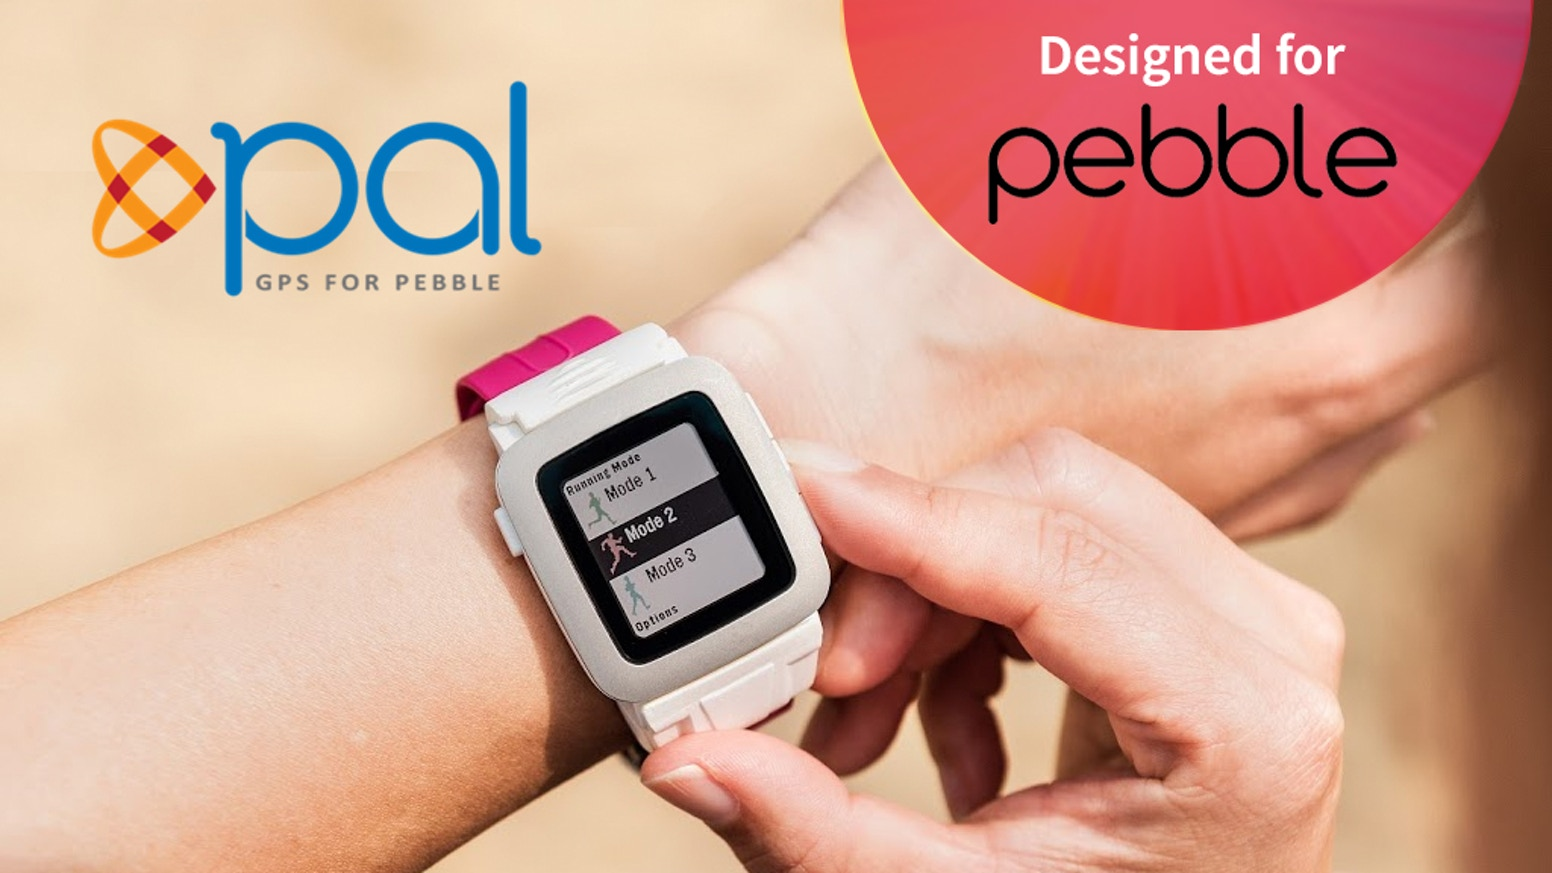 Pal is a revolutionary GPS and battery extender smartstrap for Pebble Time, Pebble Time Steel and Pebble Time 2